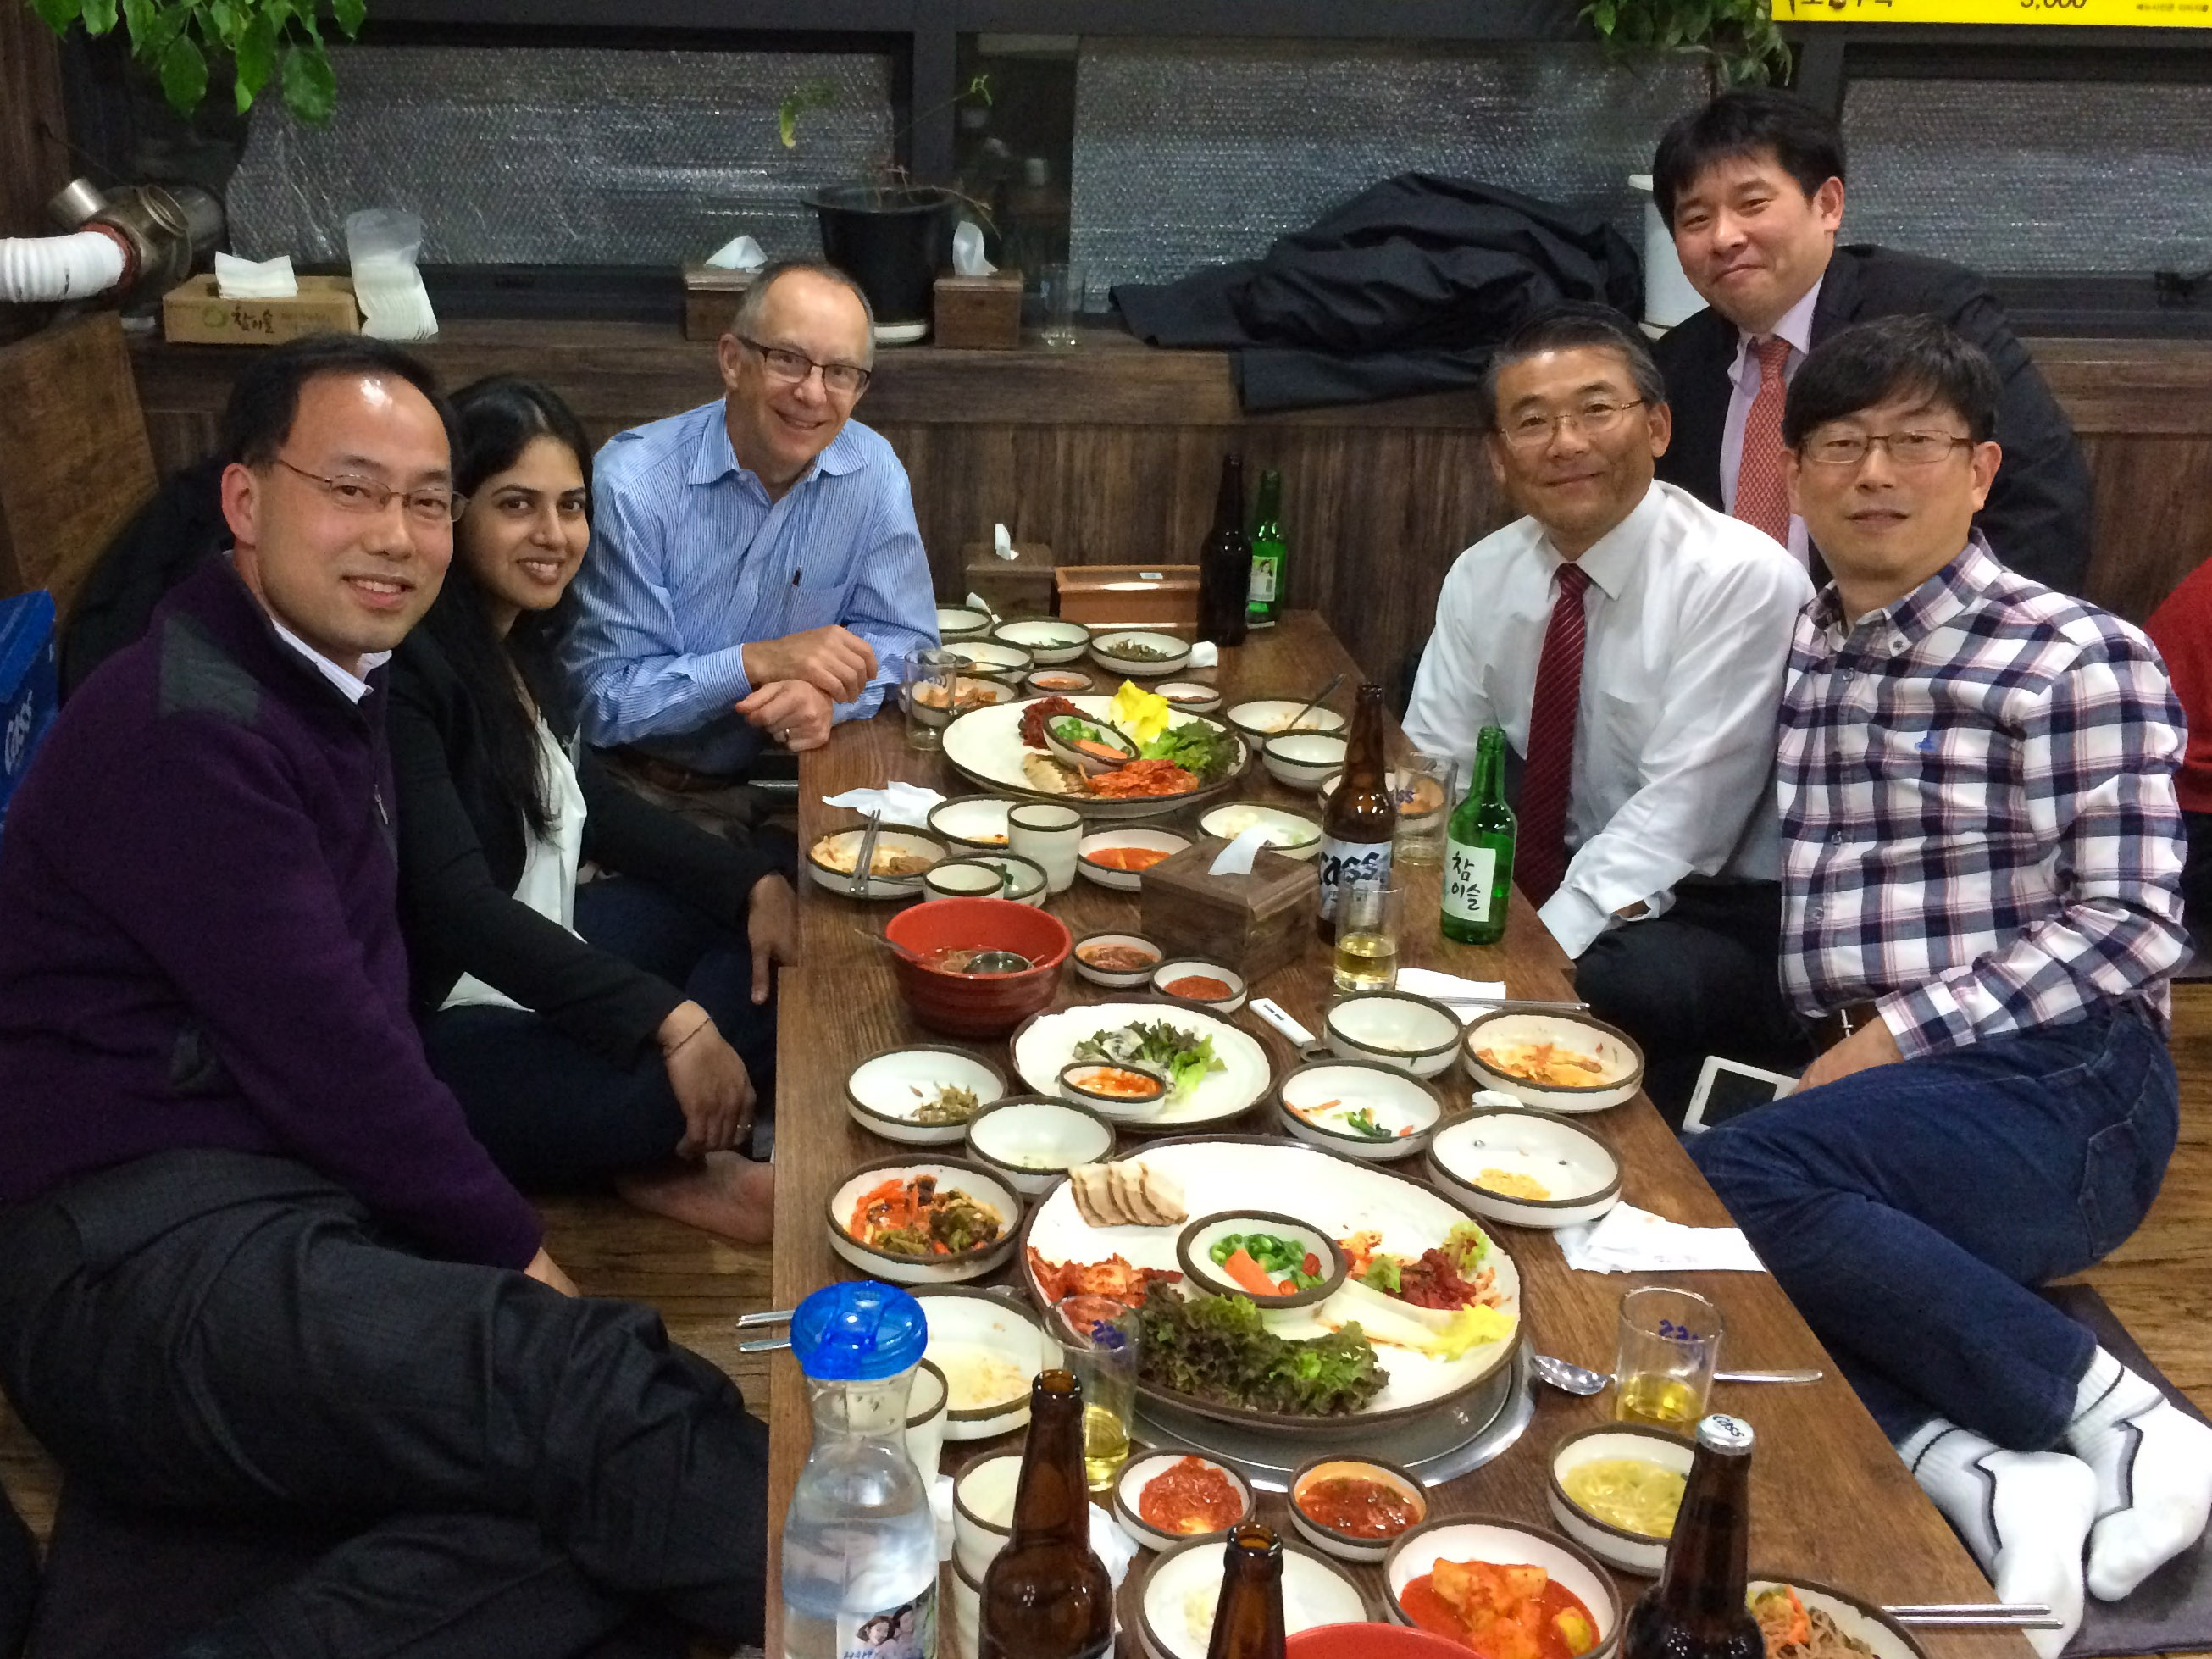 Dinner after OVNC with Dr. Won-Ki Hong, Victor